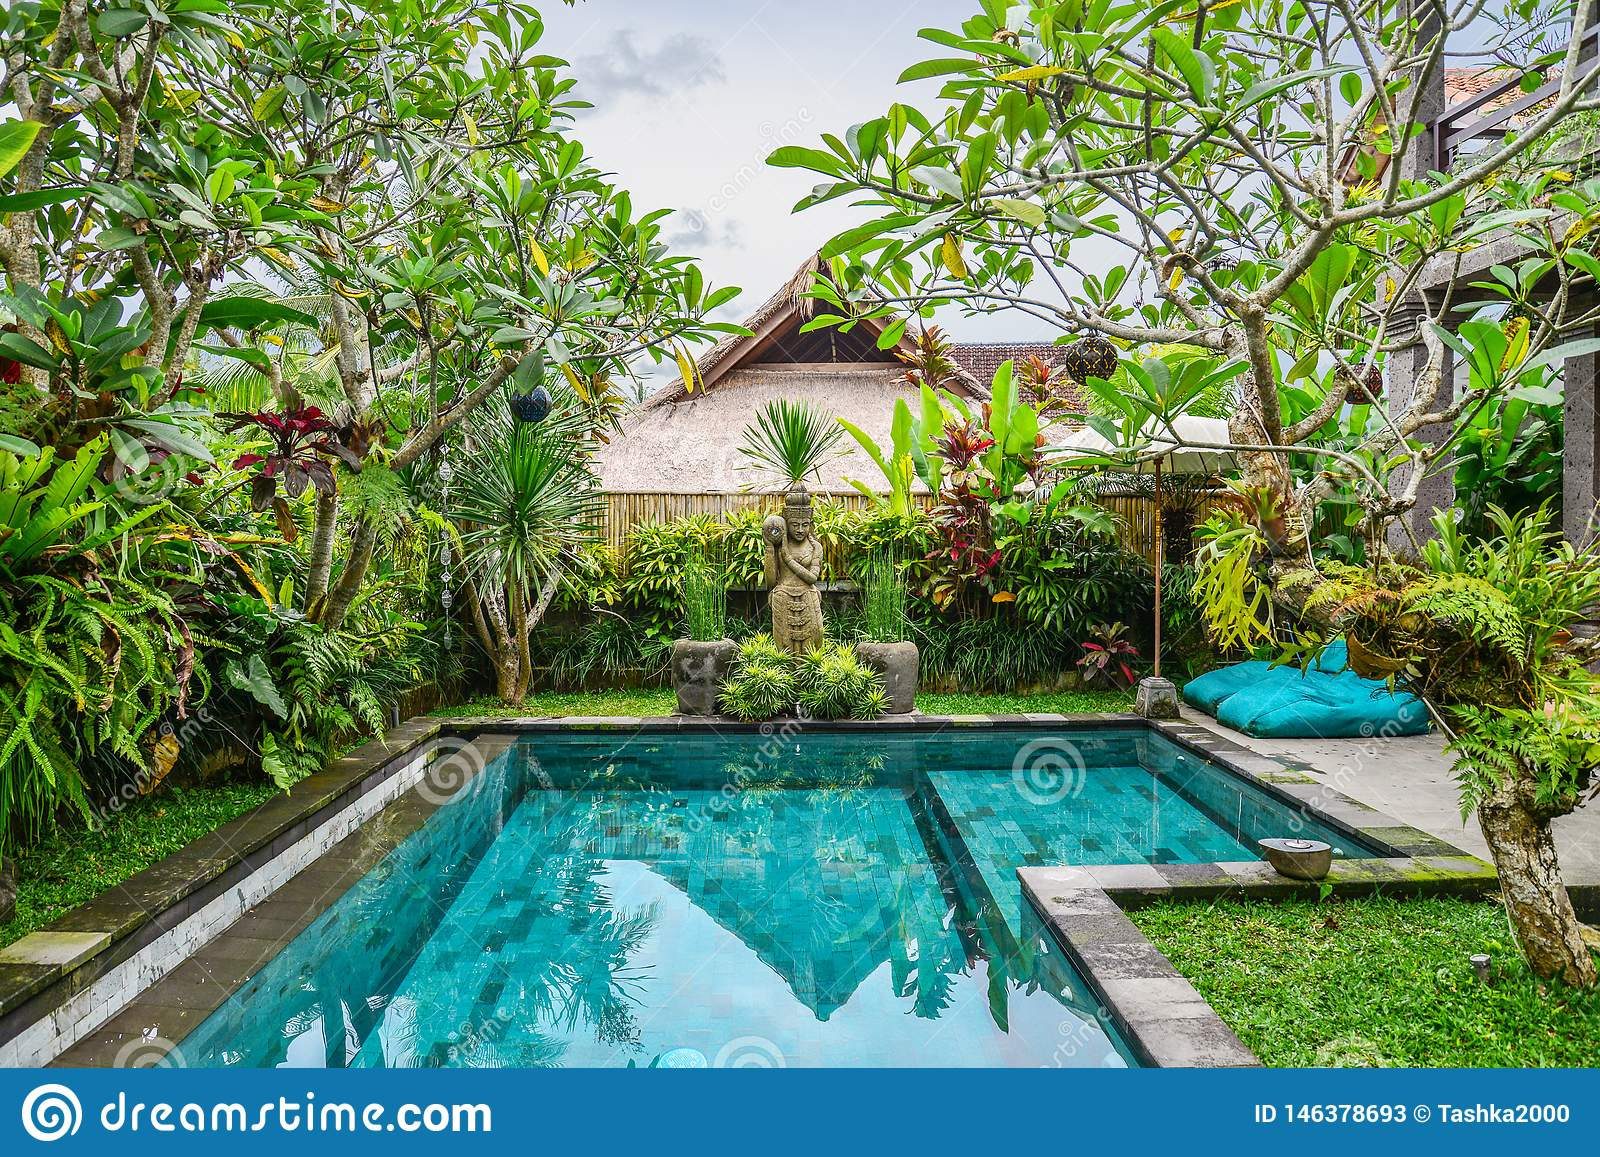 Garden With Swimming Pool garden on back yard with swimming pool stock image - image